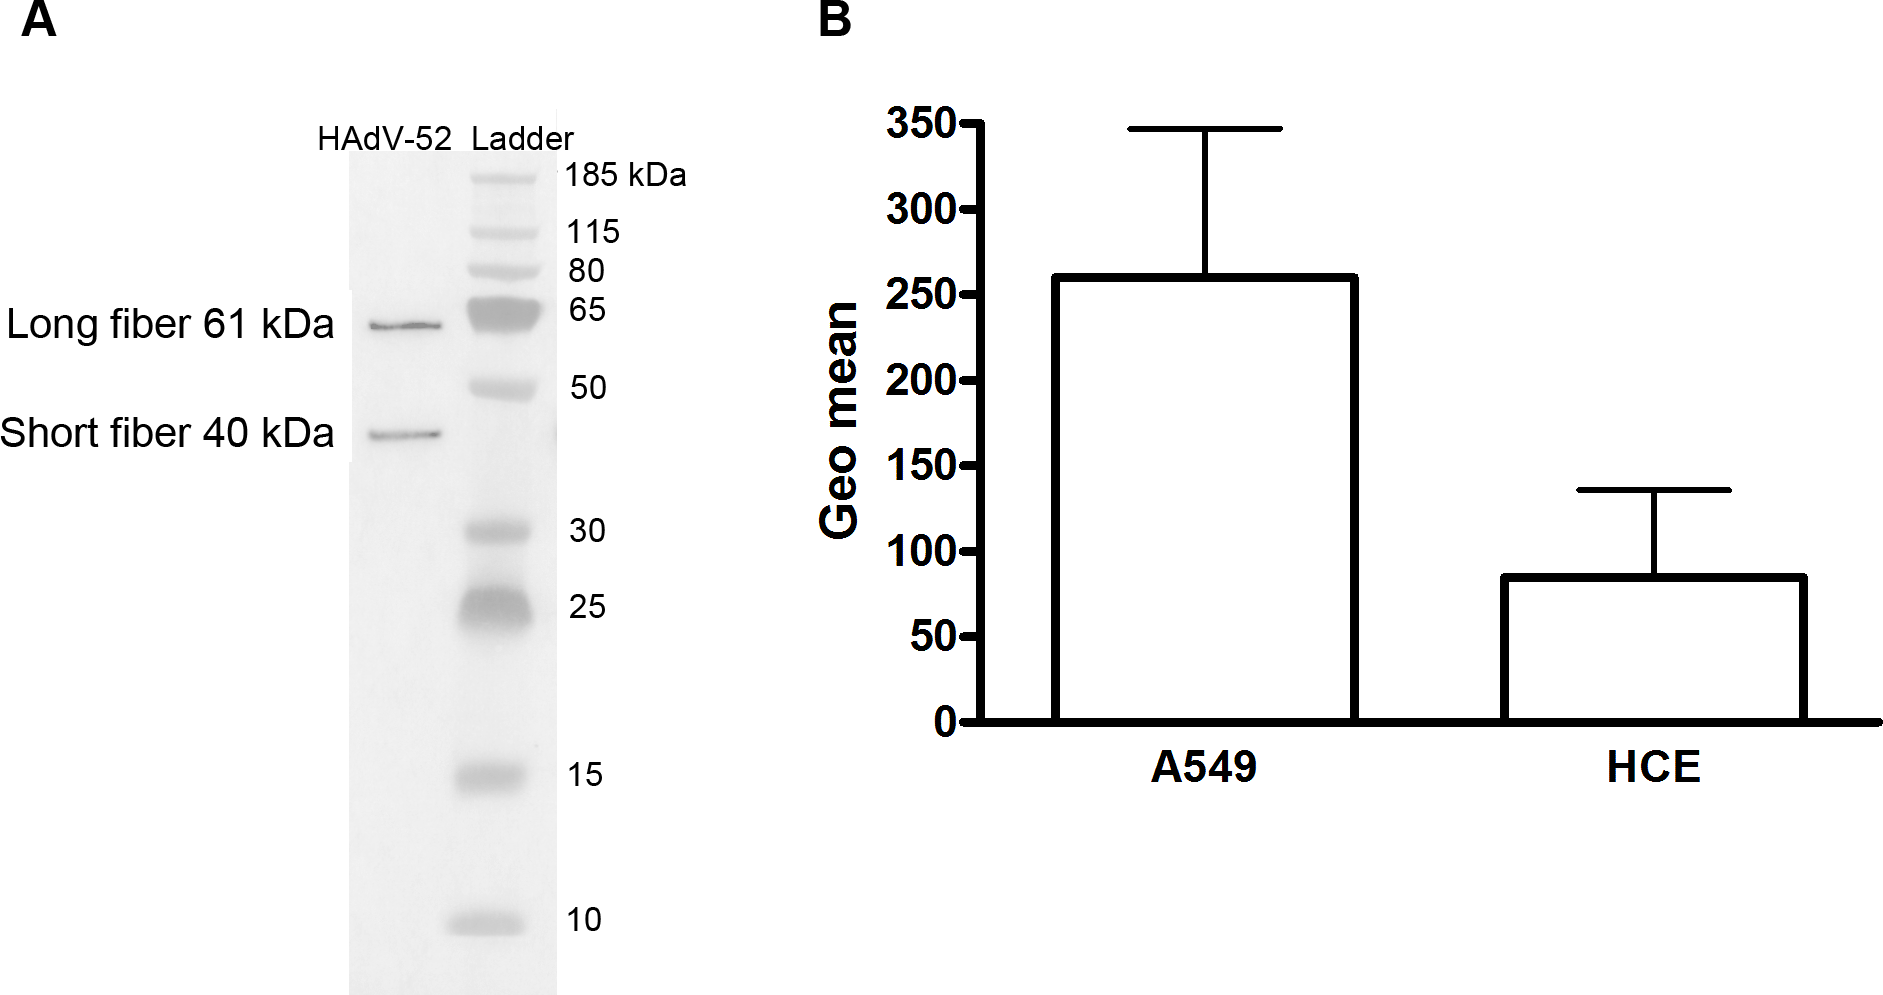 Virion composition and relative expression of CAR and sialic acid on human epithelial cells.